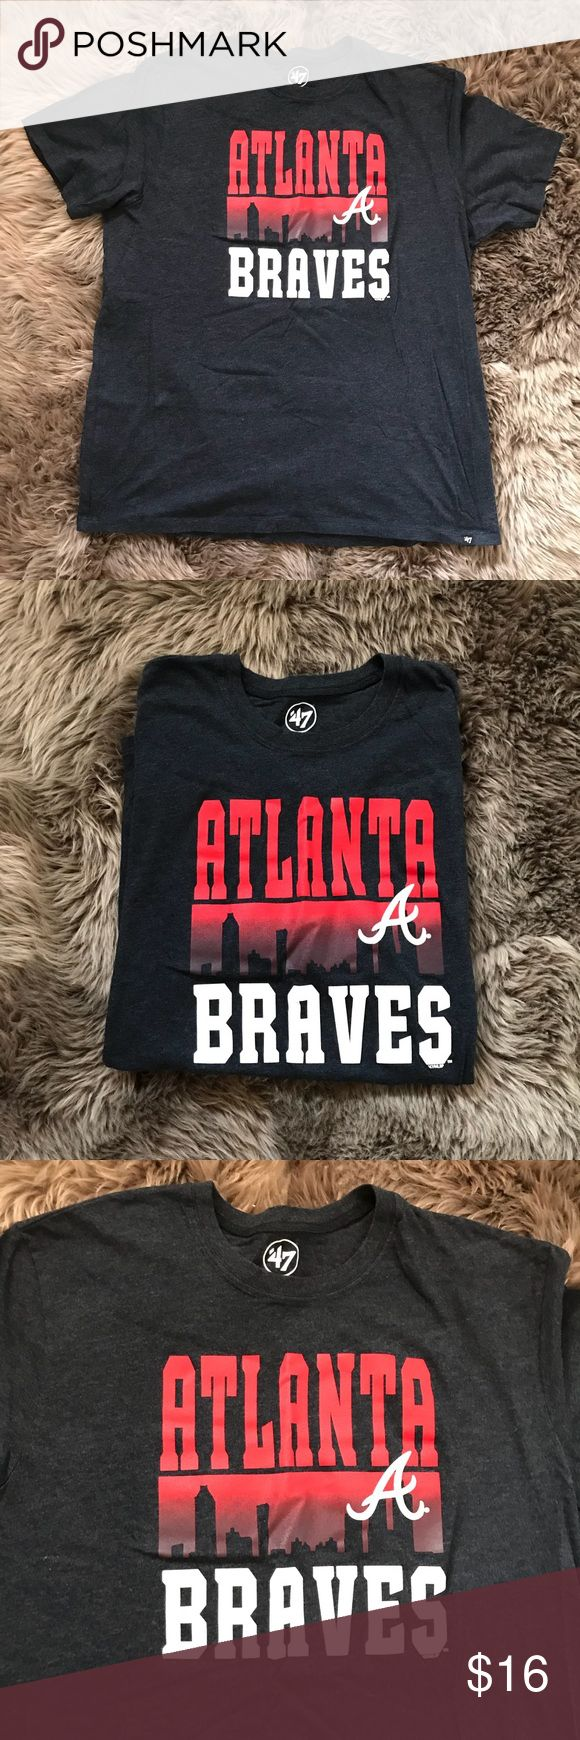 Men's Atlanta Braves Shirt This Men's Atlanta Braves Shirt is Navy Blue with Red/White writing. Only worn once, in excellent condition. Size: XL 47 Shirts Tees - Short Sleeve